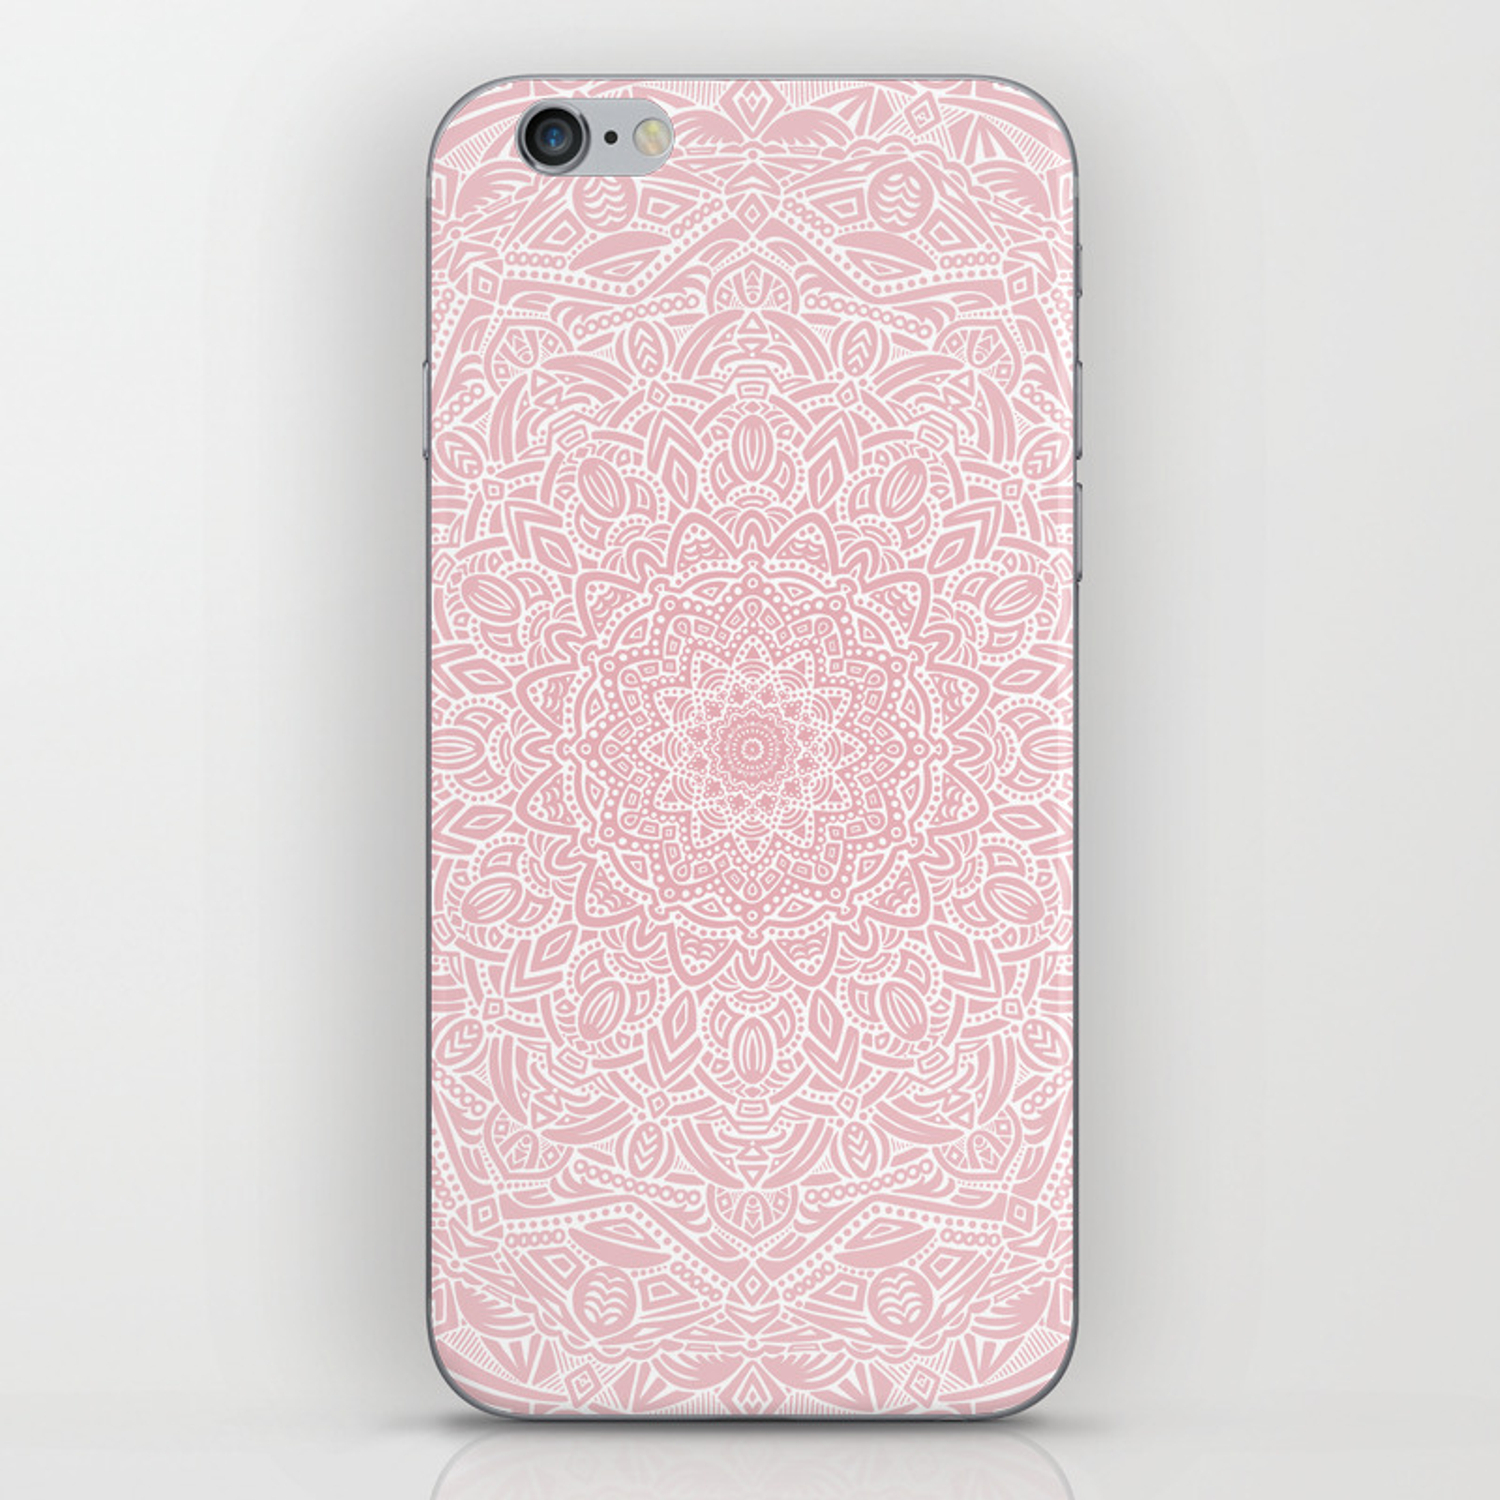 most detailed mandala rose gold pink color intricate detail ethnic mandalas zentangle maze pattern phone skin